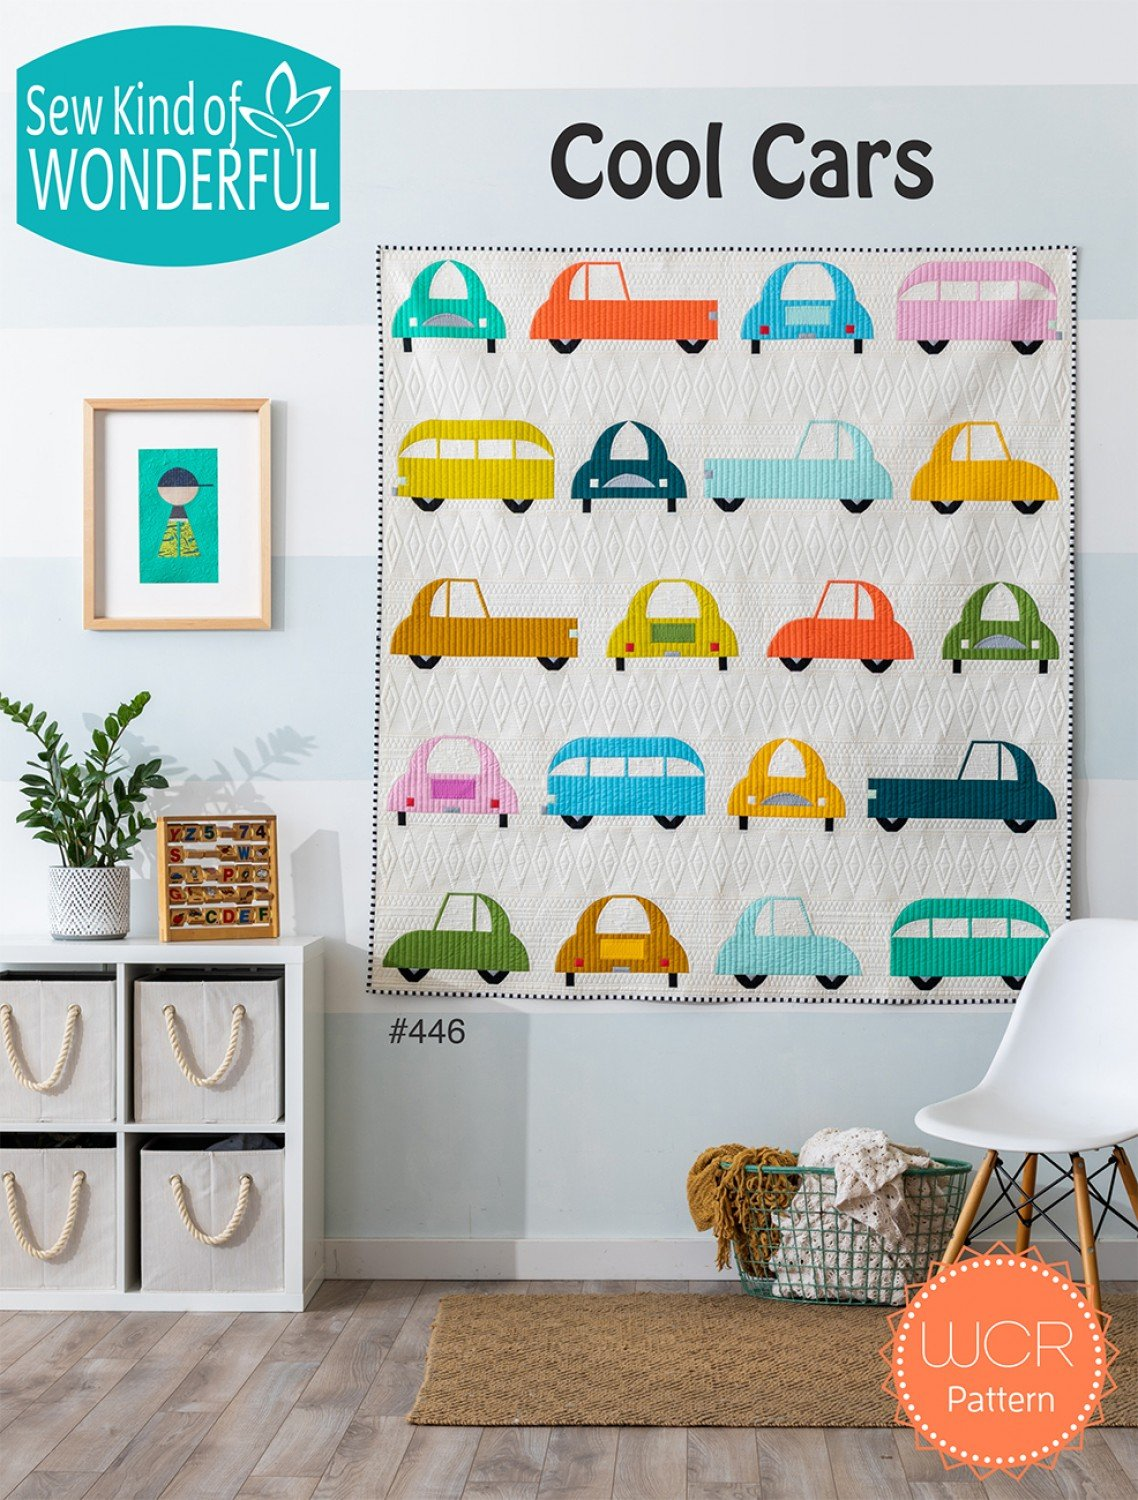 Cool Cars Quilt Pattern | Sew Kind of Wonderful